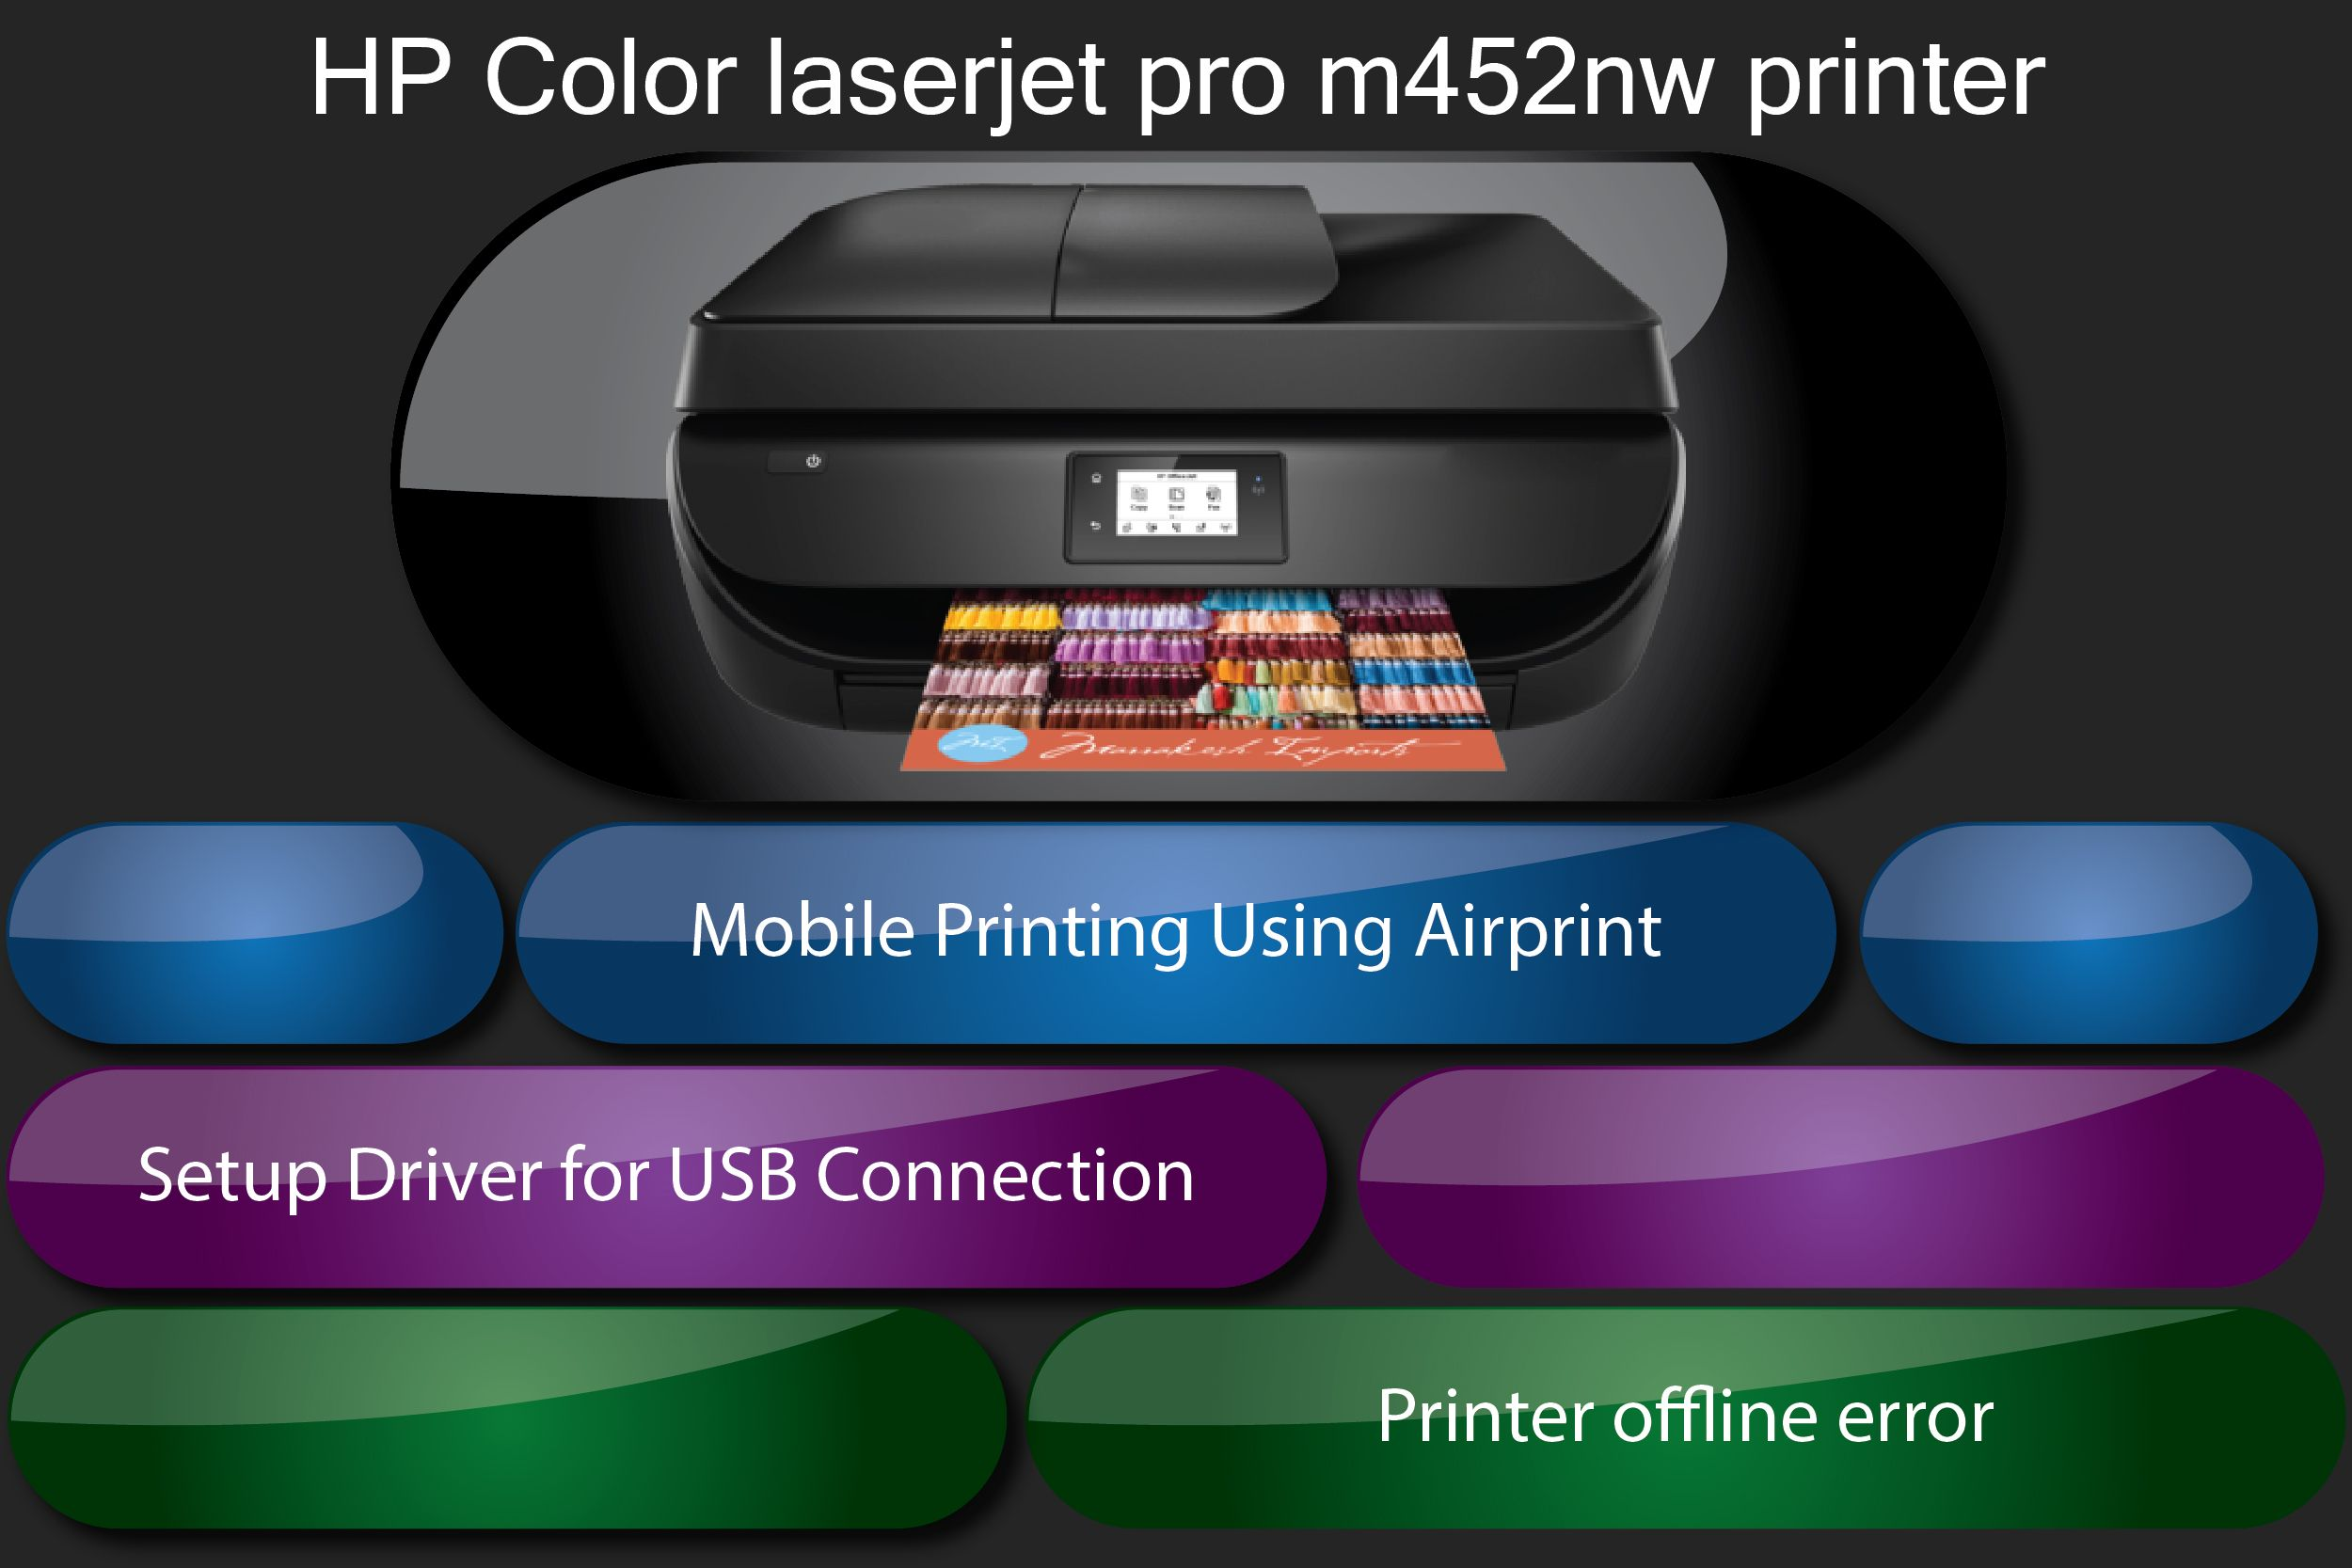 Are you facing printer offline error or any common error issues? we